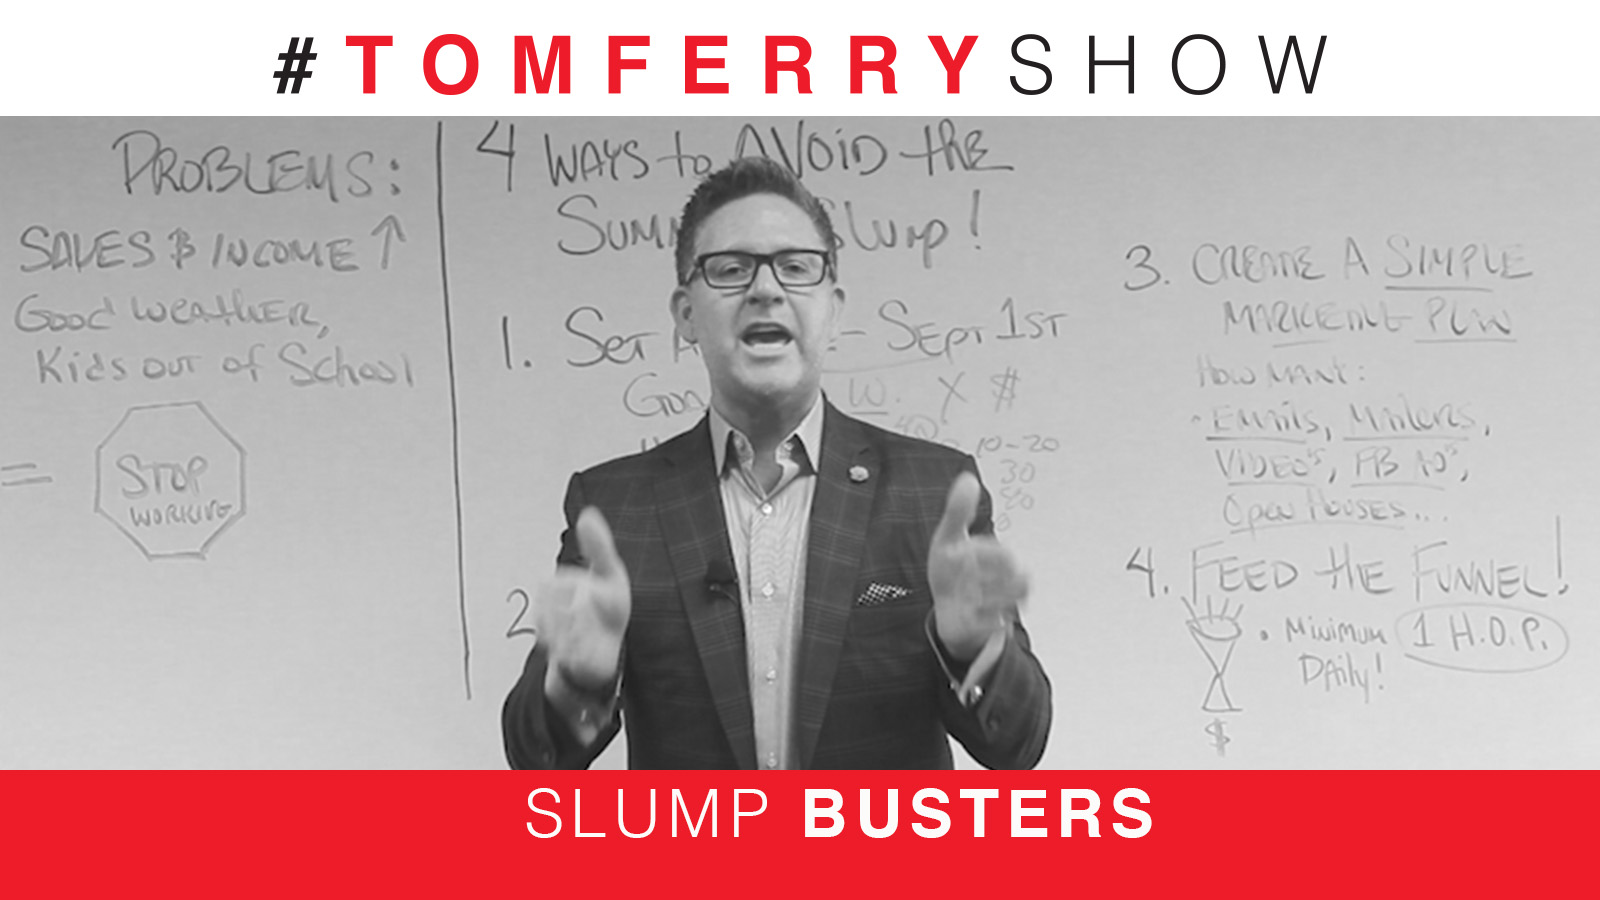 4 Ways to Avoid the Summer Slump – #TomFerryShow